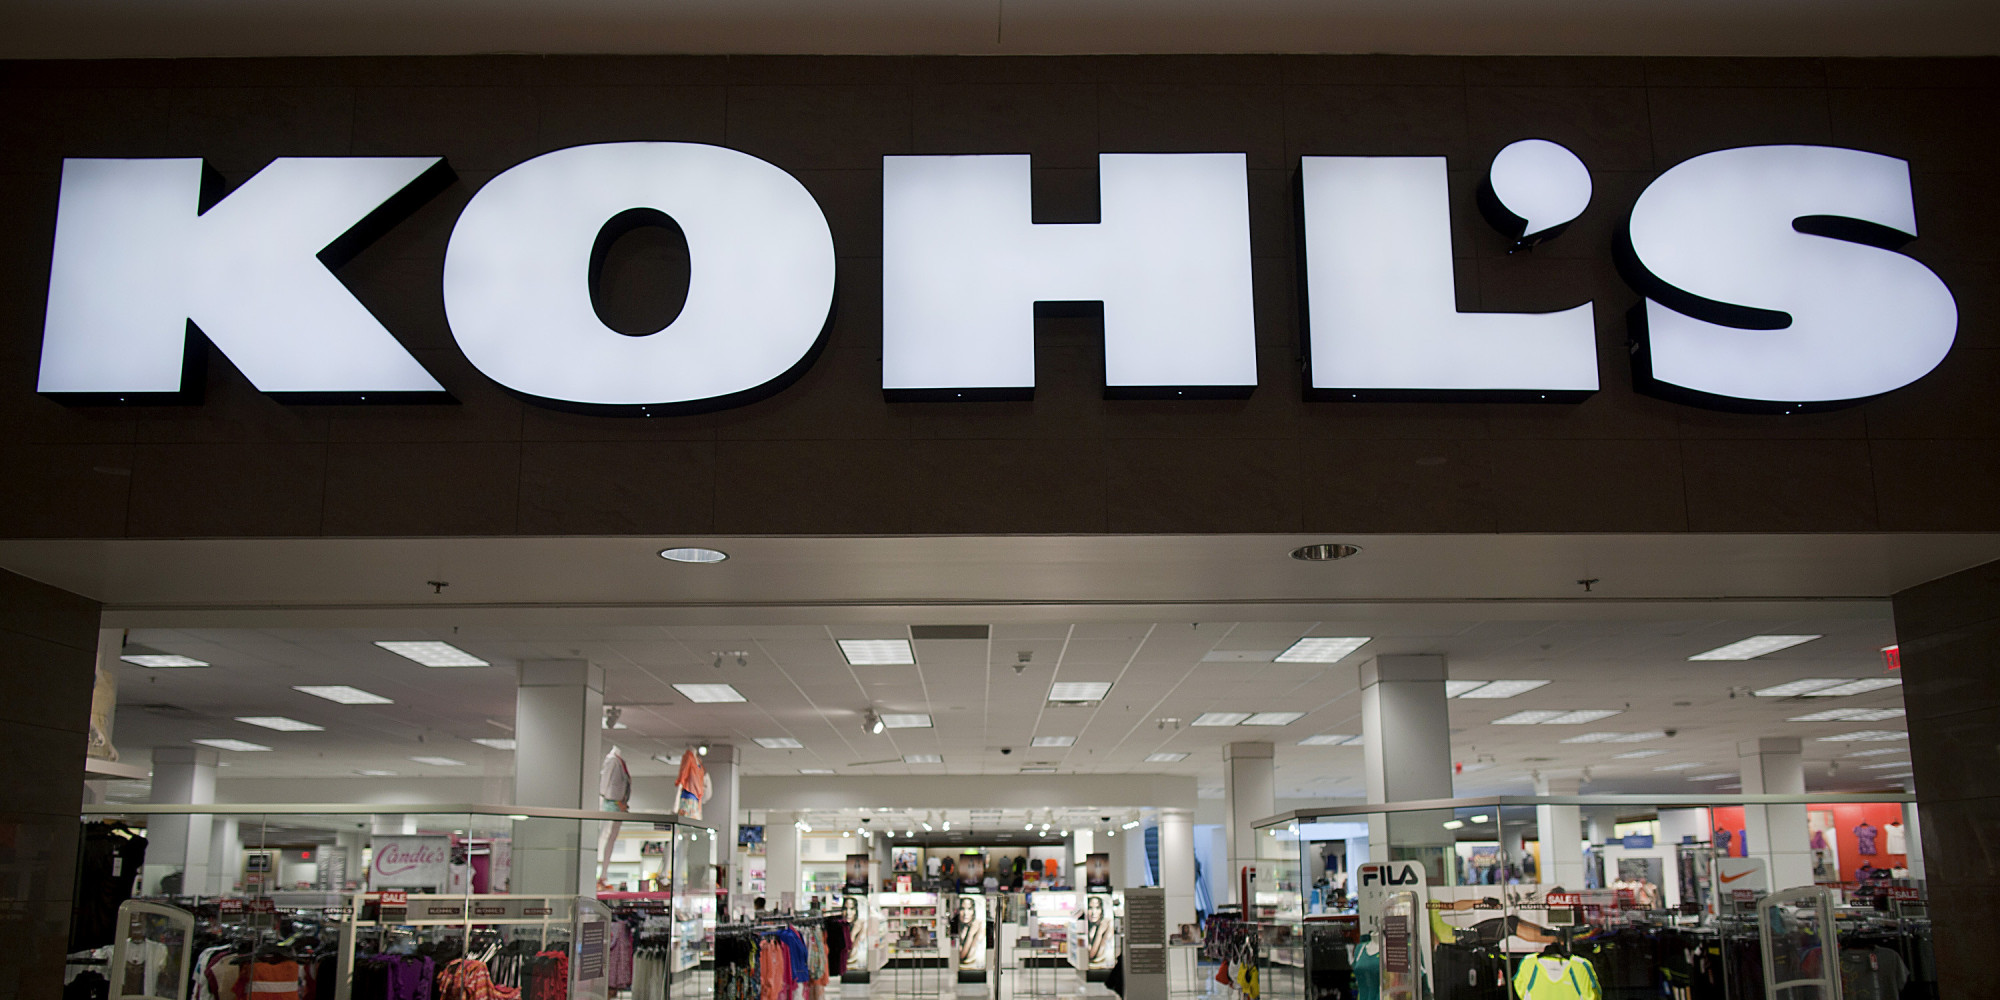 Menomonee Falls-based retailer Kohl's Corp. has hired Greg Revelle to serve as its chief marketing officer.